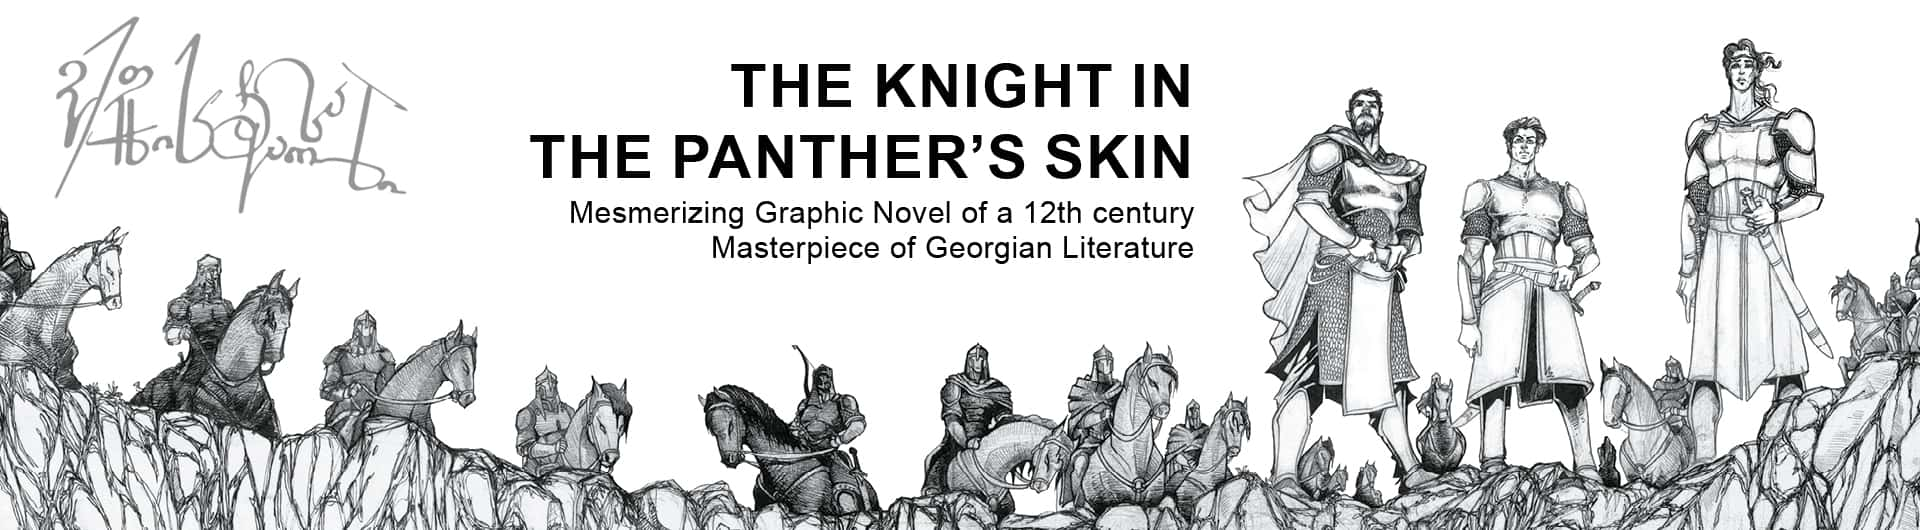 The-Knight-In-The-Panther's-Skin